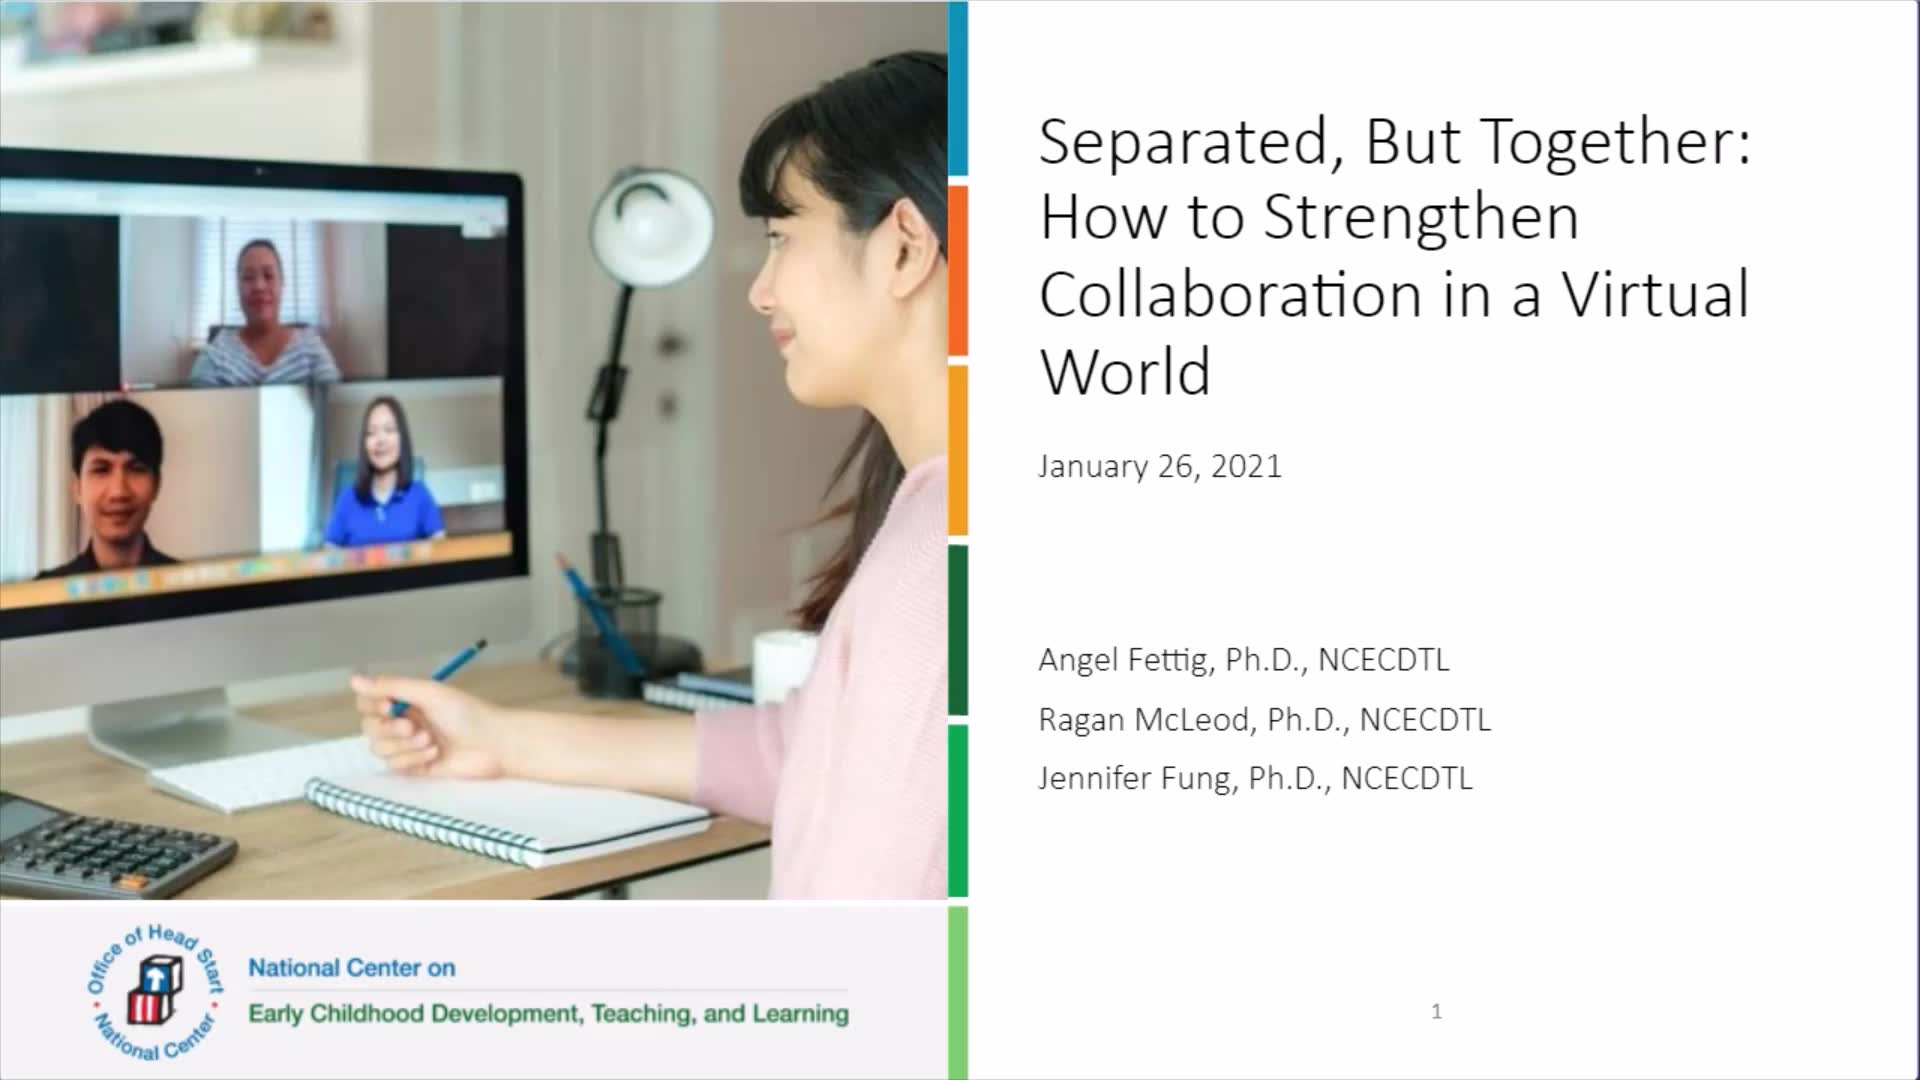 Separated, But Together: How to Strengthen Collaboration in a Virtual World